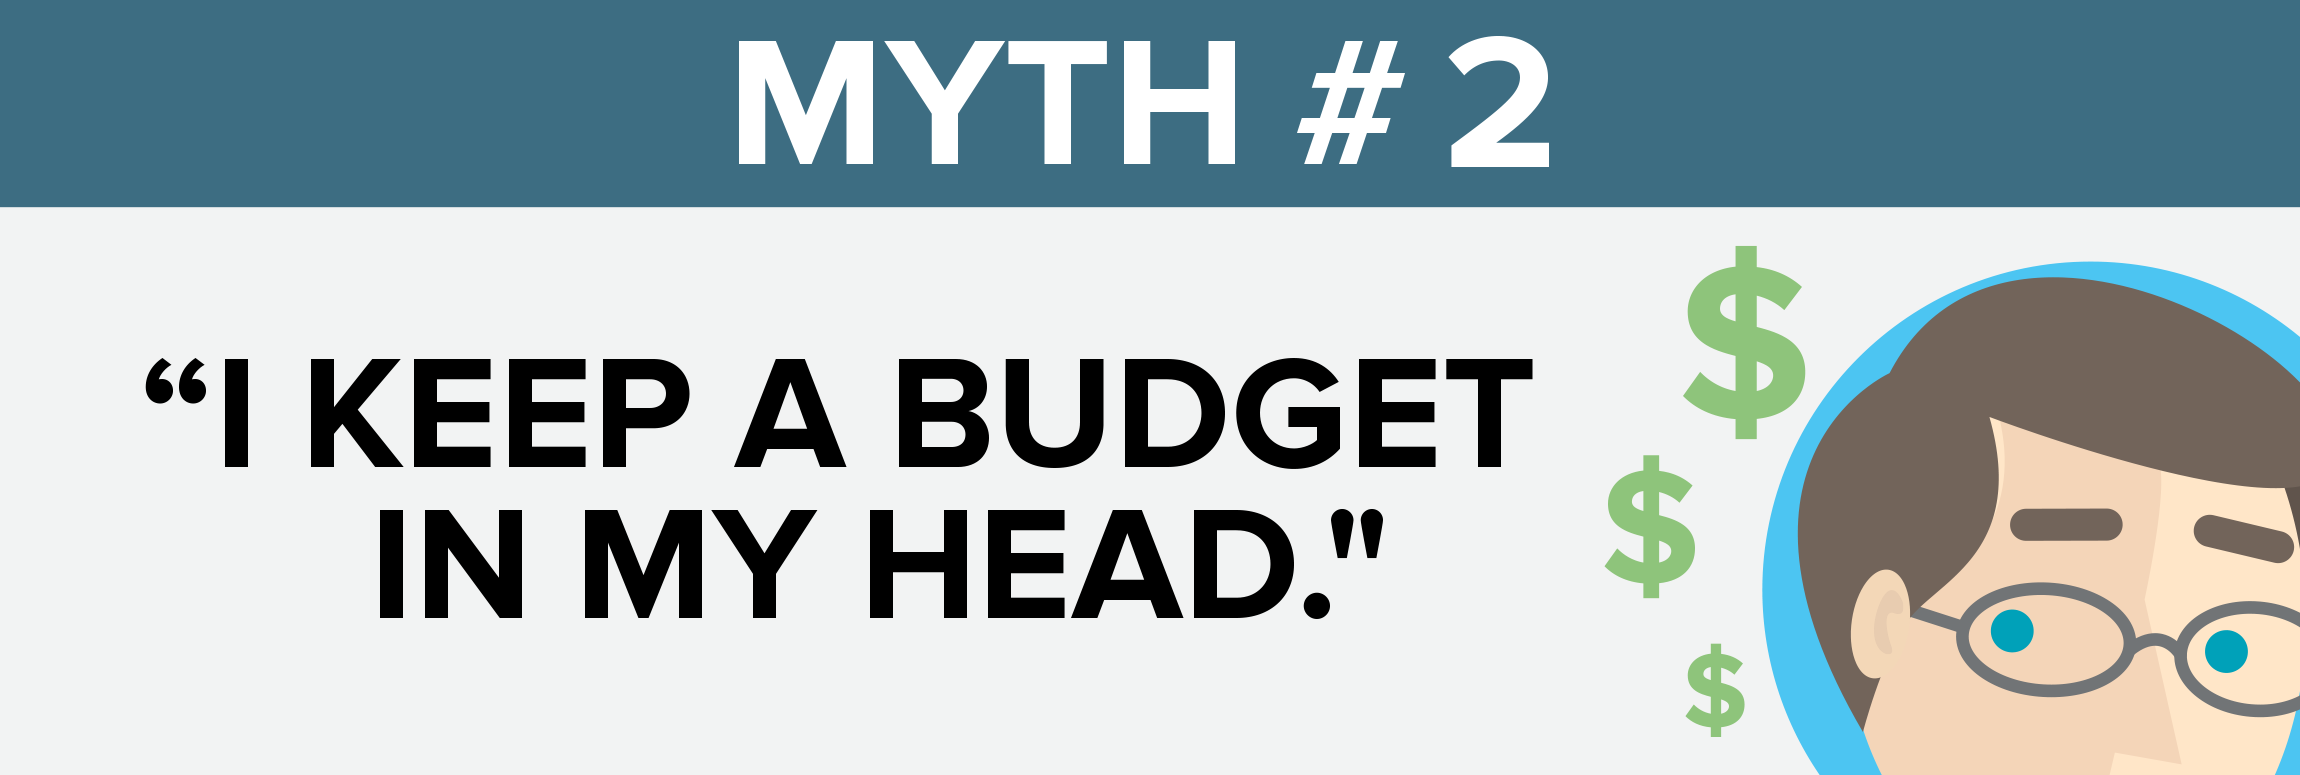 Myth #2 I keep a budget in my head